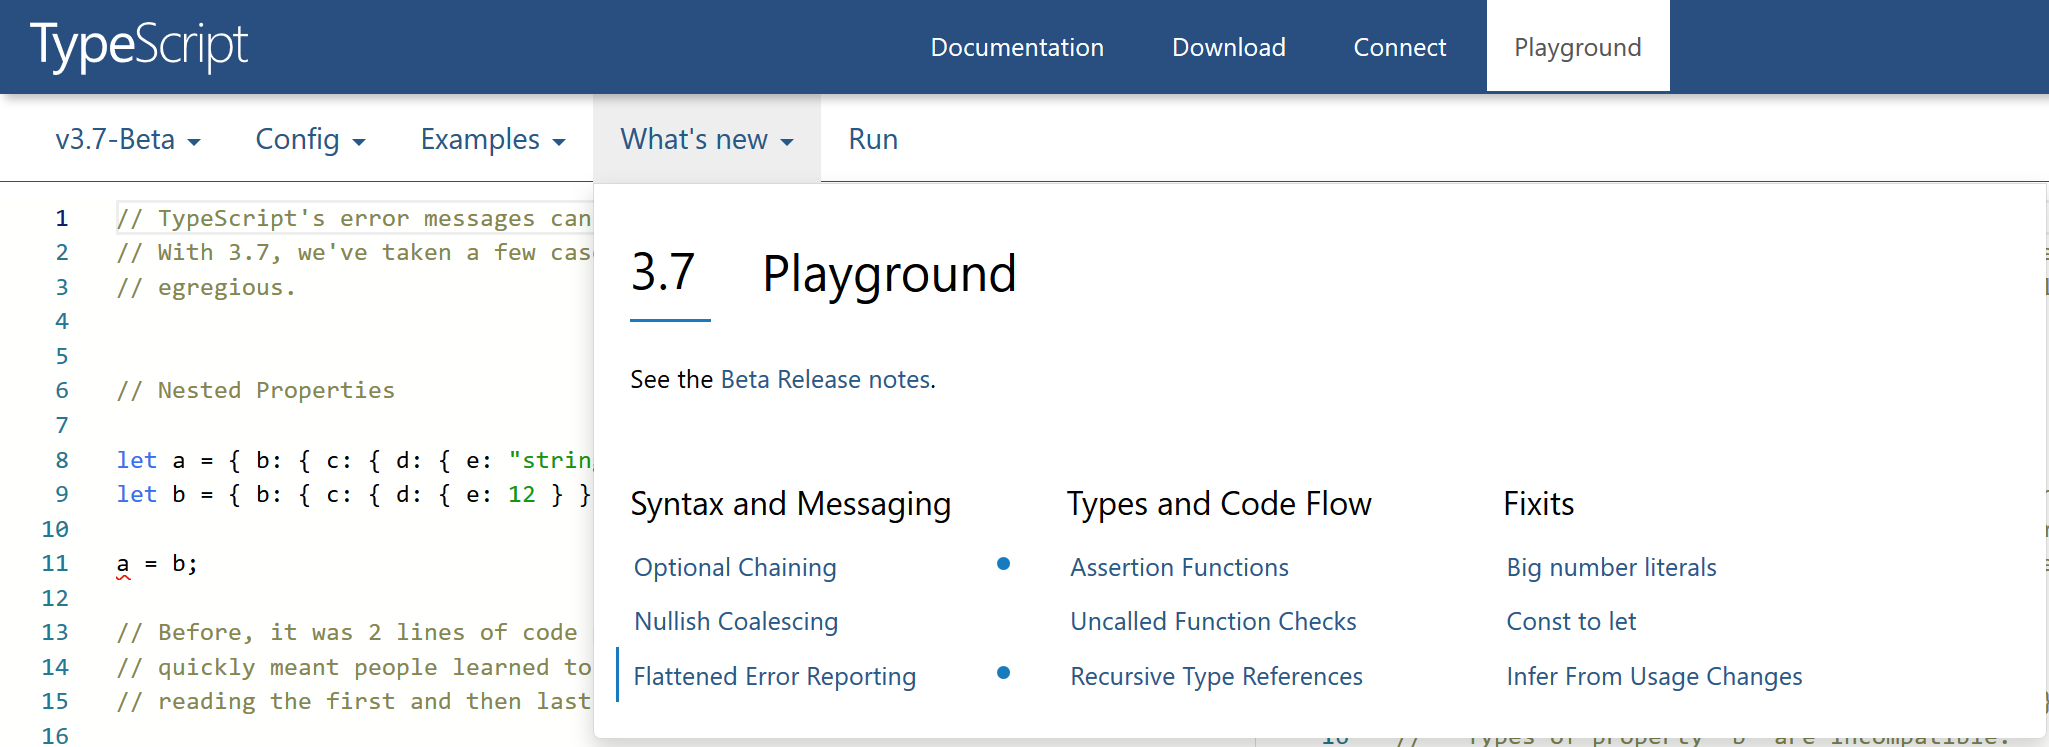 A screenshot of the TypeScript playground which now has a section for learning what's new.